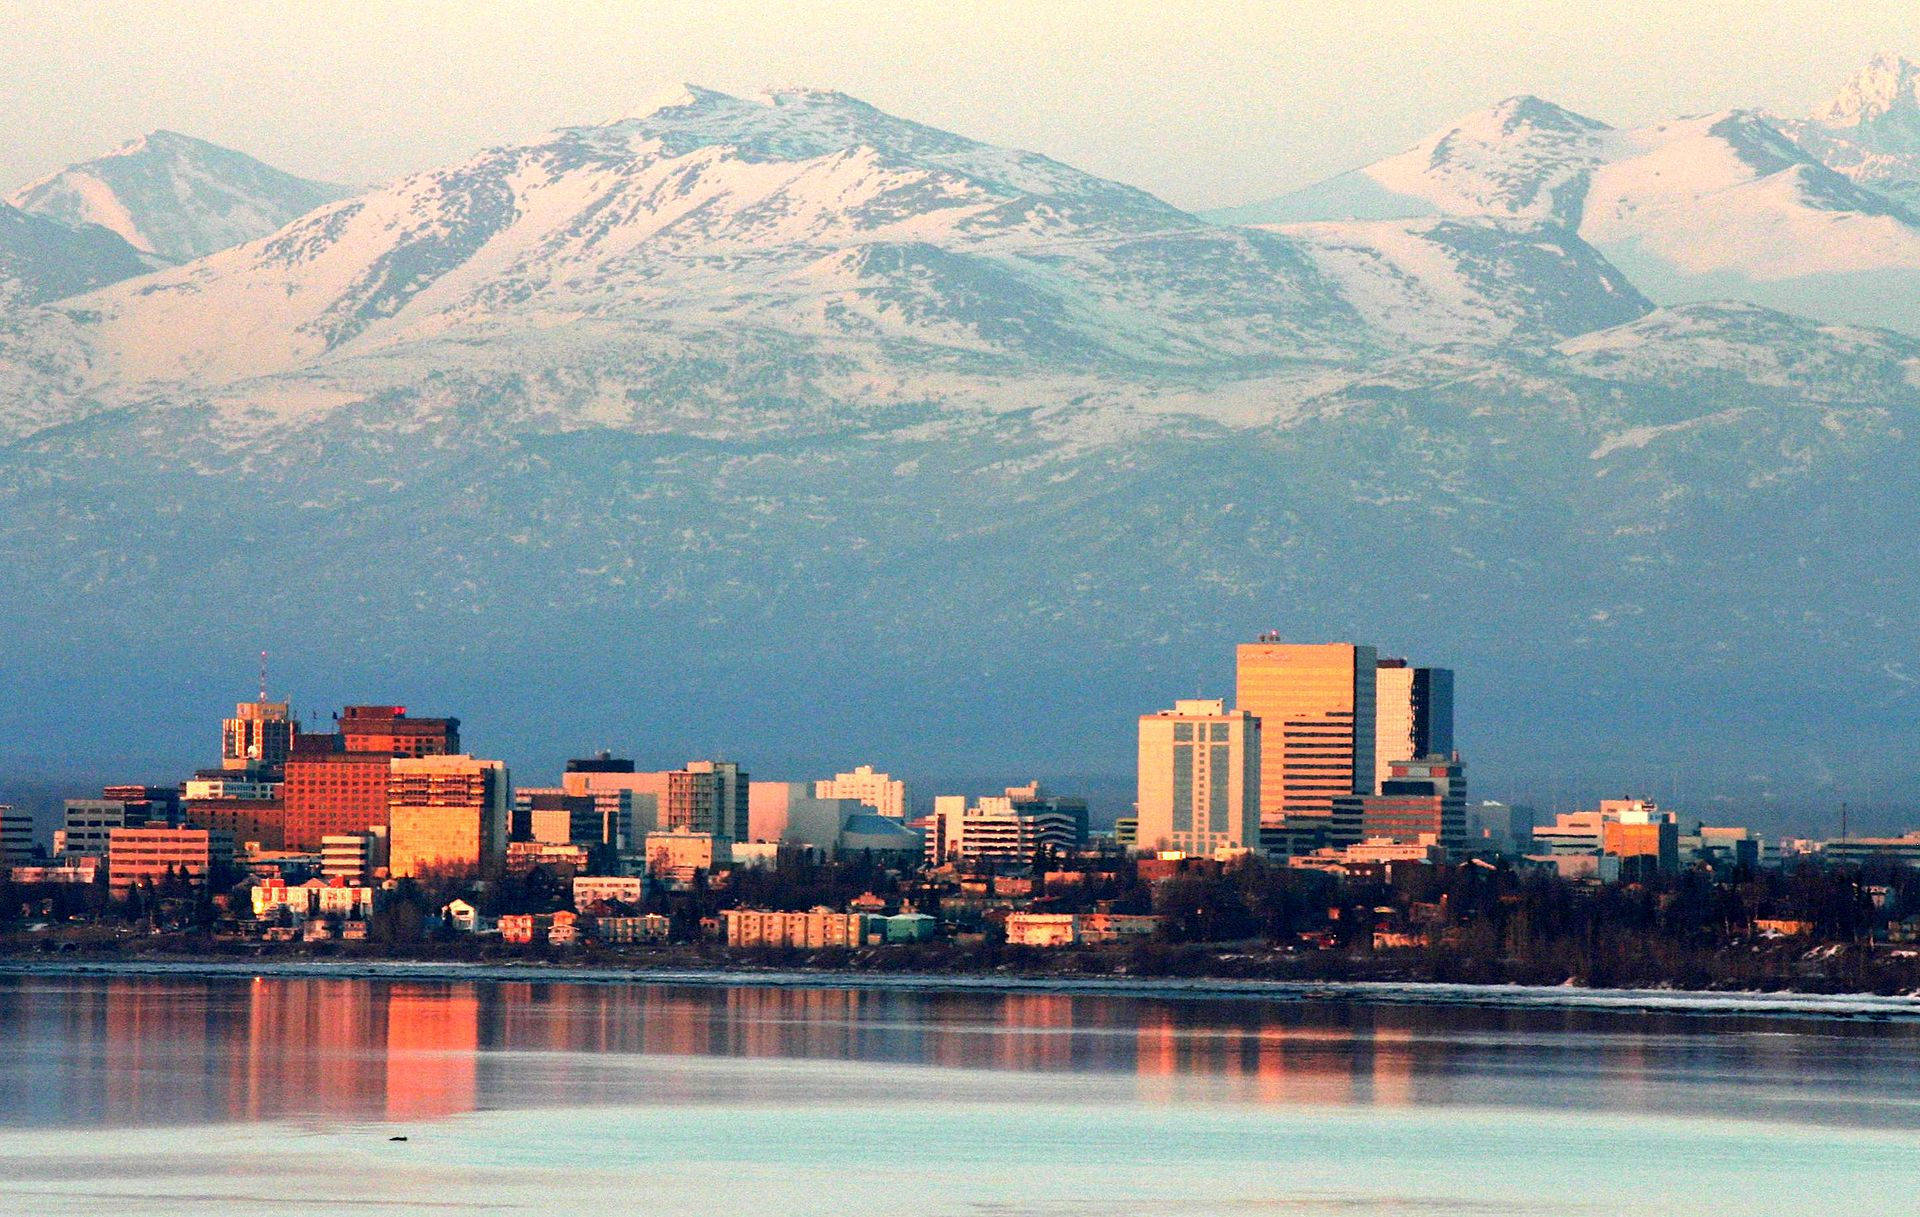 Anchorage. (Creative Commons photo by Frank K.)